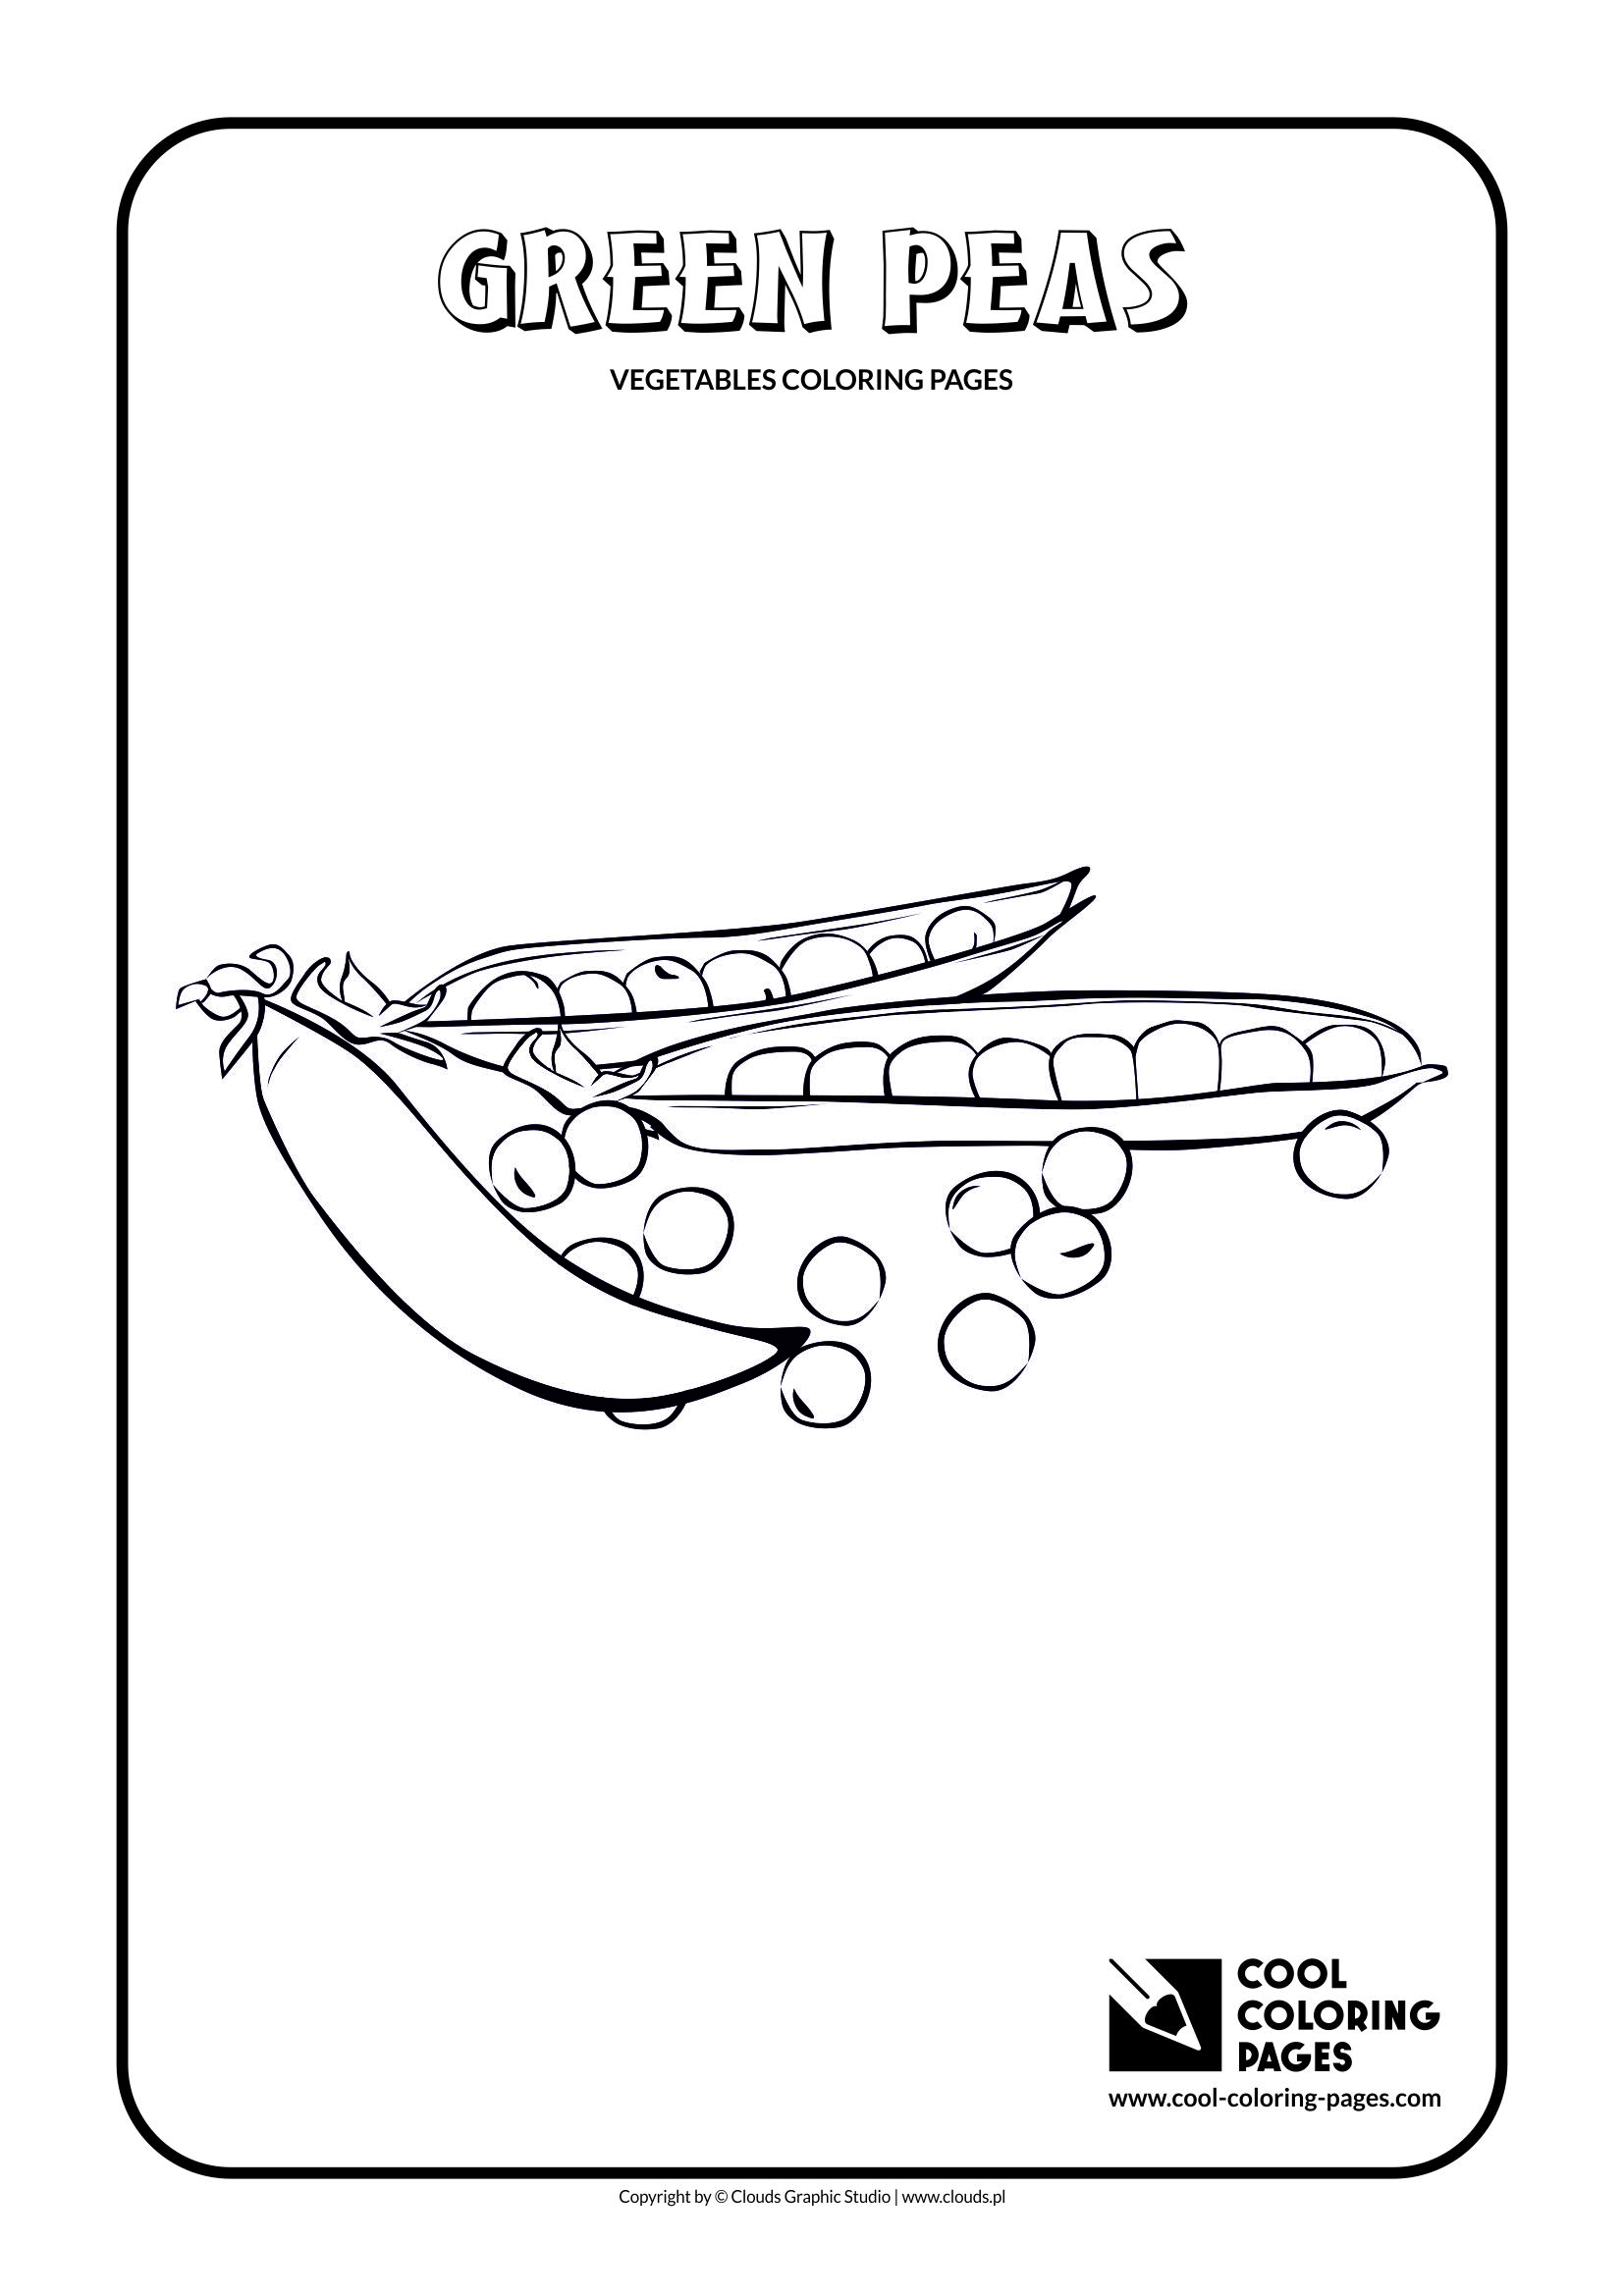 Cool Coloring Pages - Plants / Green peas / Coloring page with green peas